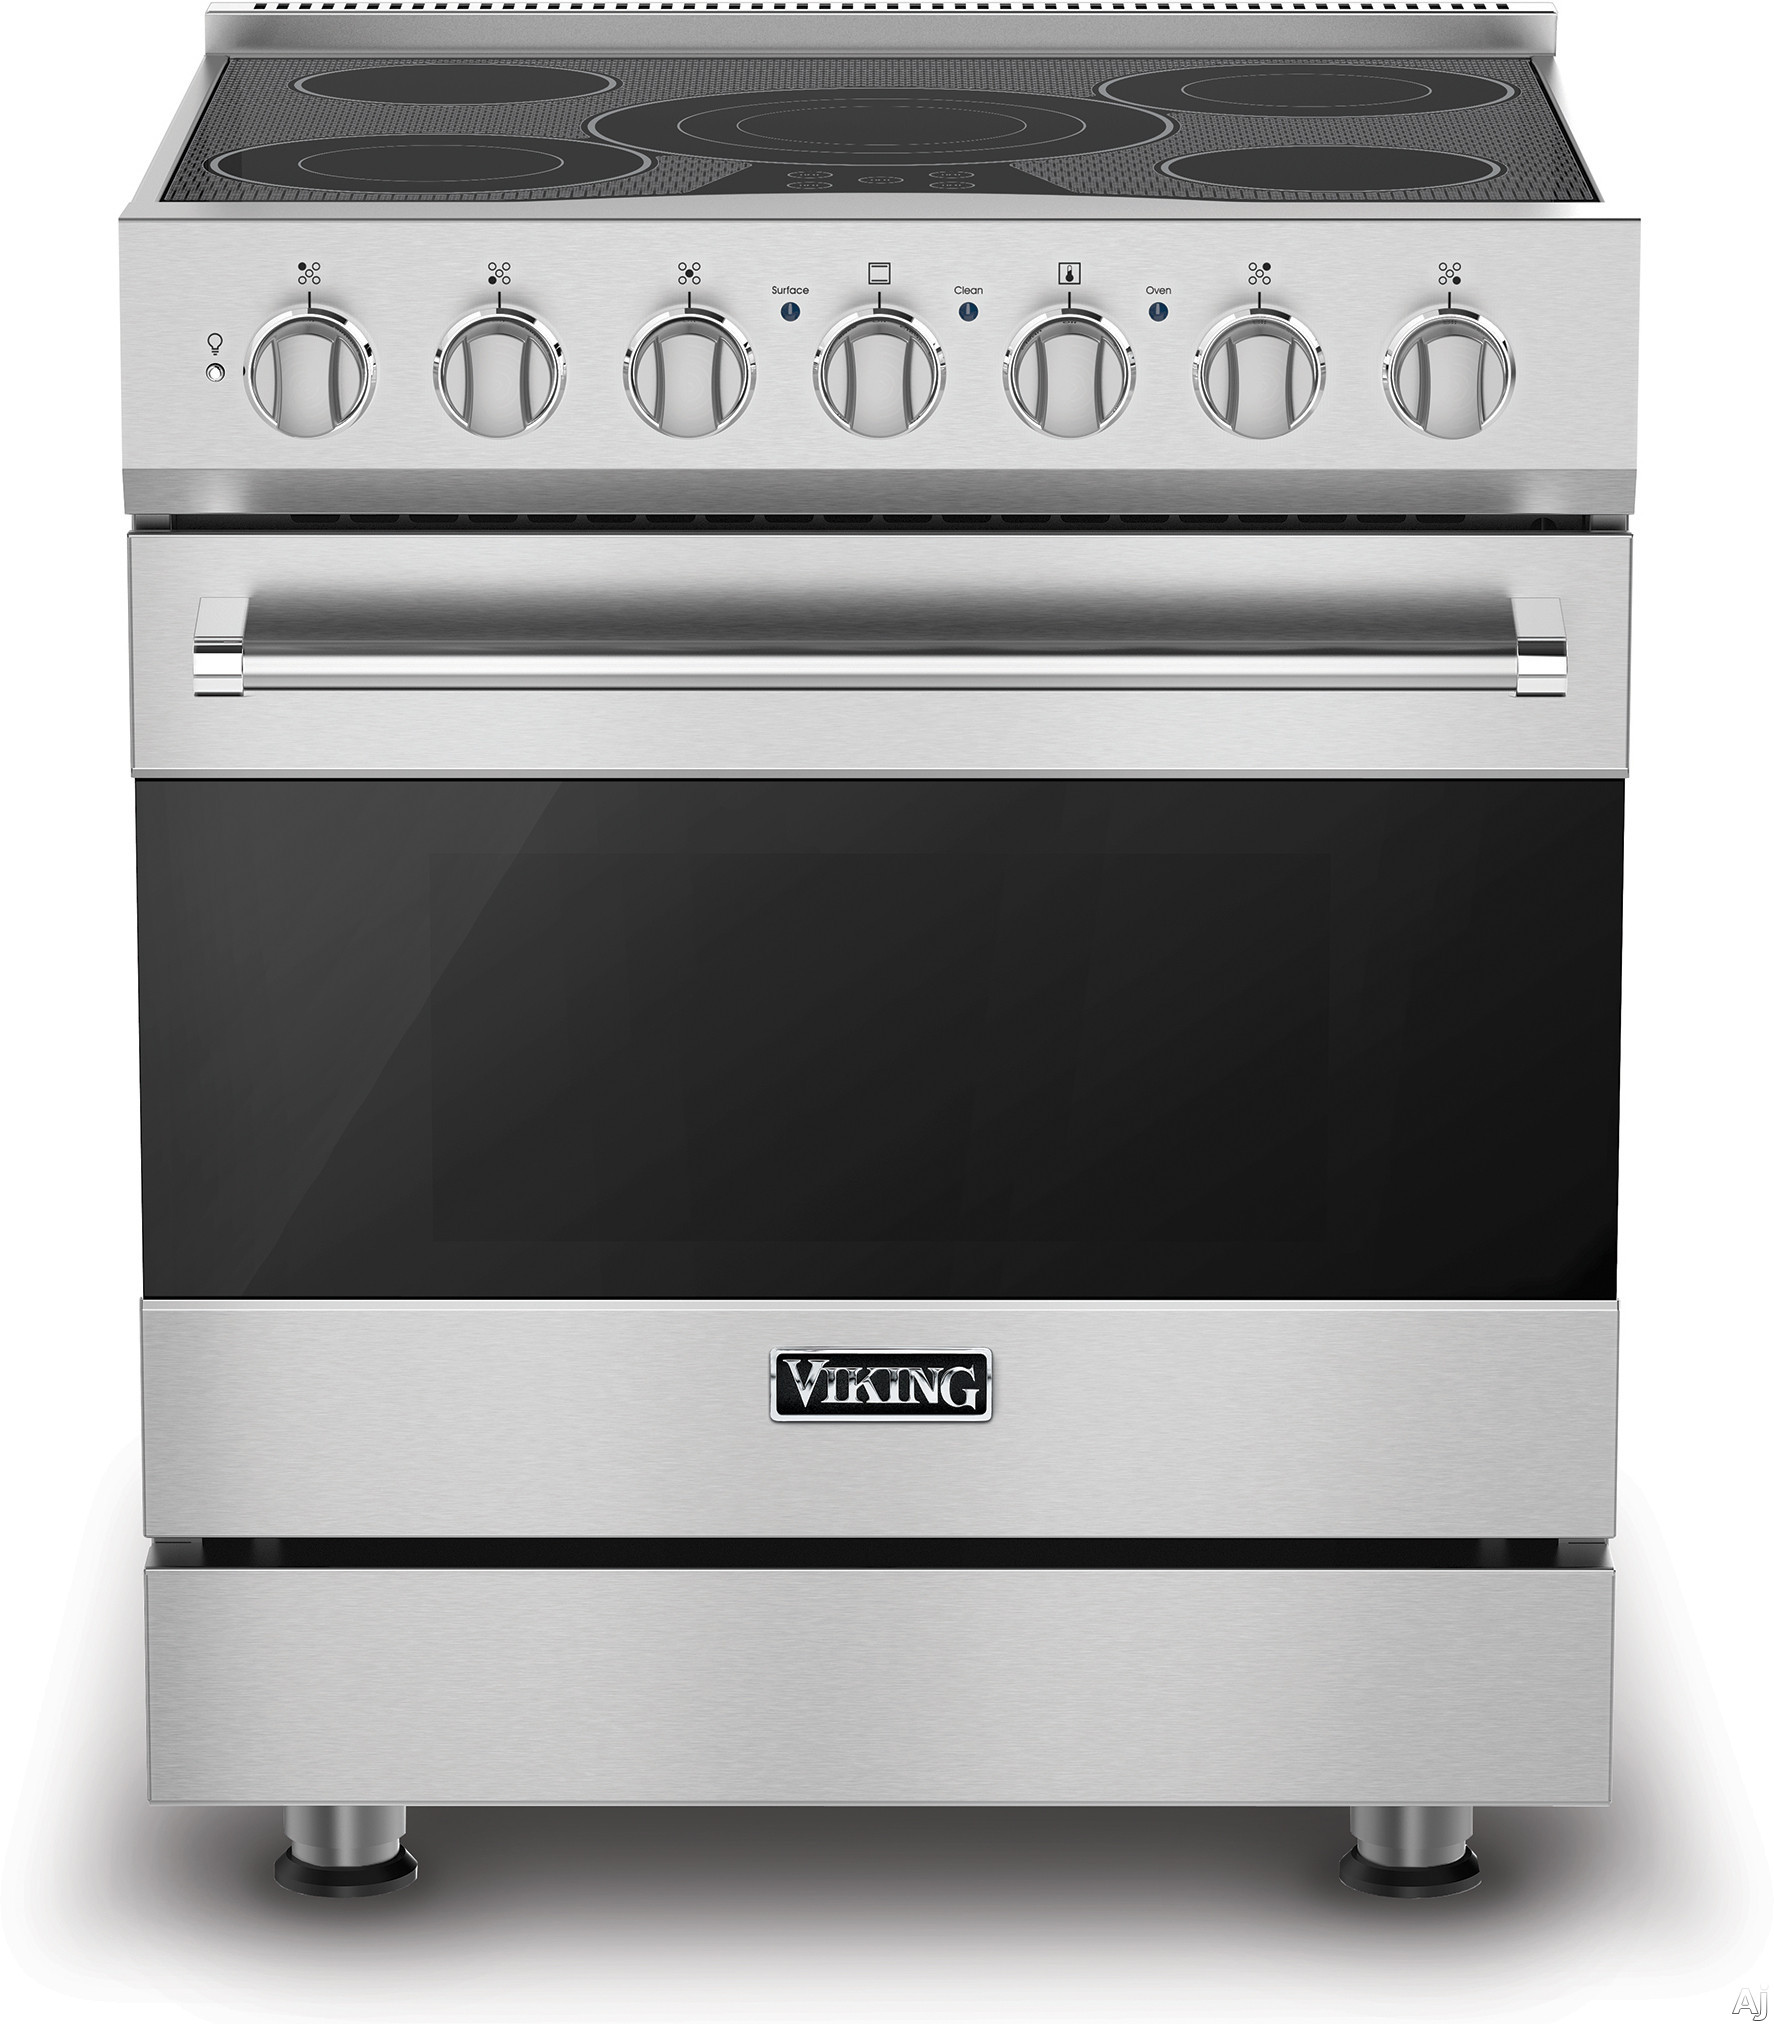 Viking 3 Series RVER33015B 30 Inch Freestanding Electric Range with 5 Radiant Elements 3 200 Watts 47 cu ft Convection Oven Halogen Lighting Self Clean and TruGlide Full Extension Rack